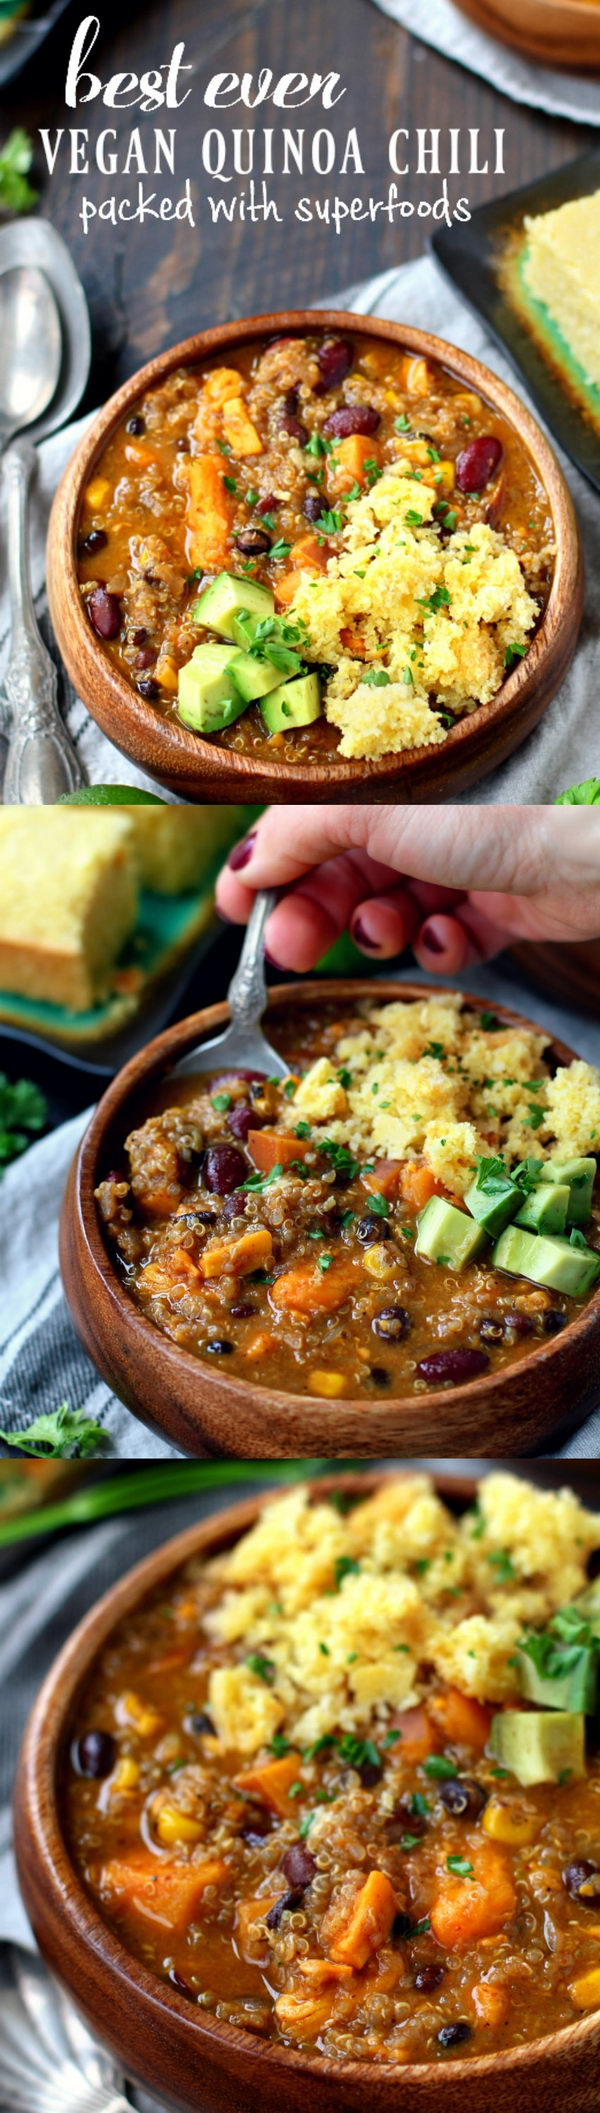 Best Ever Vegan Quinoa Chili.